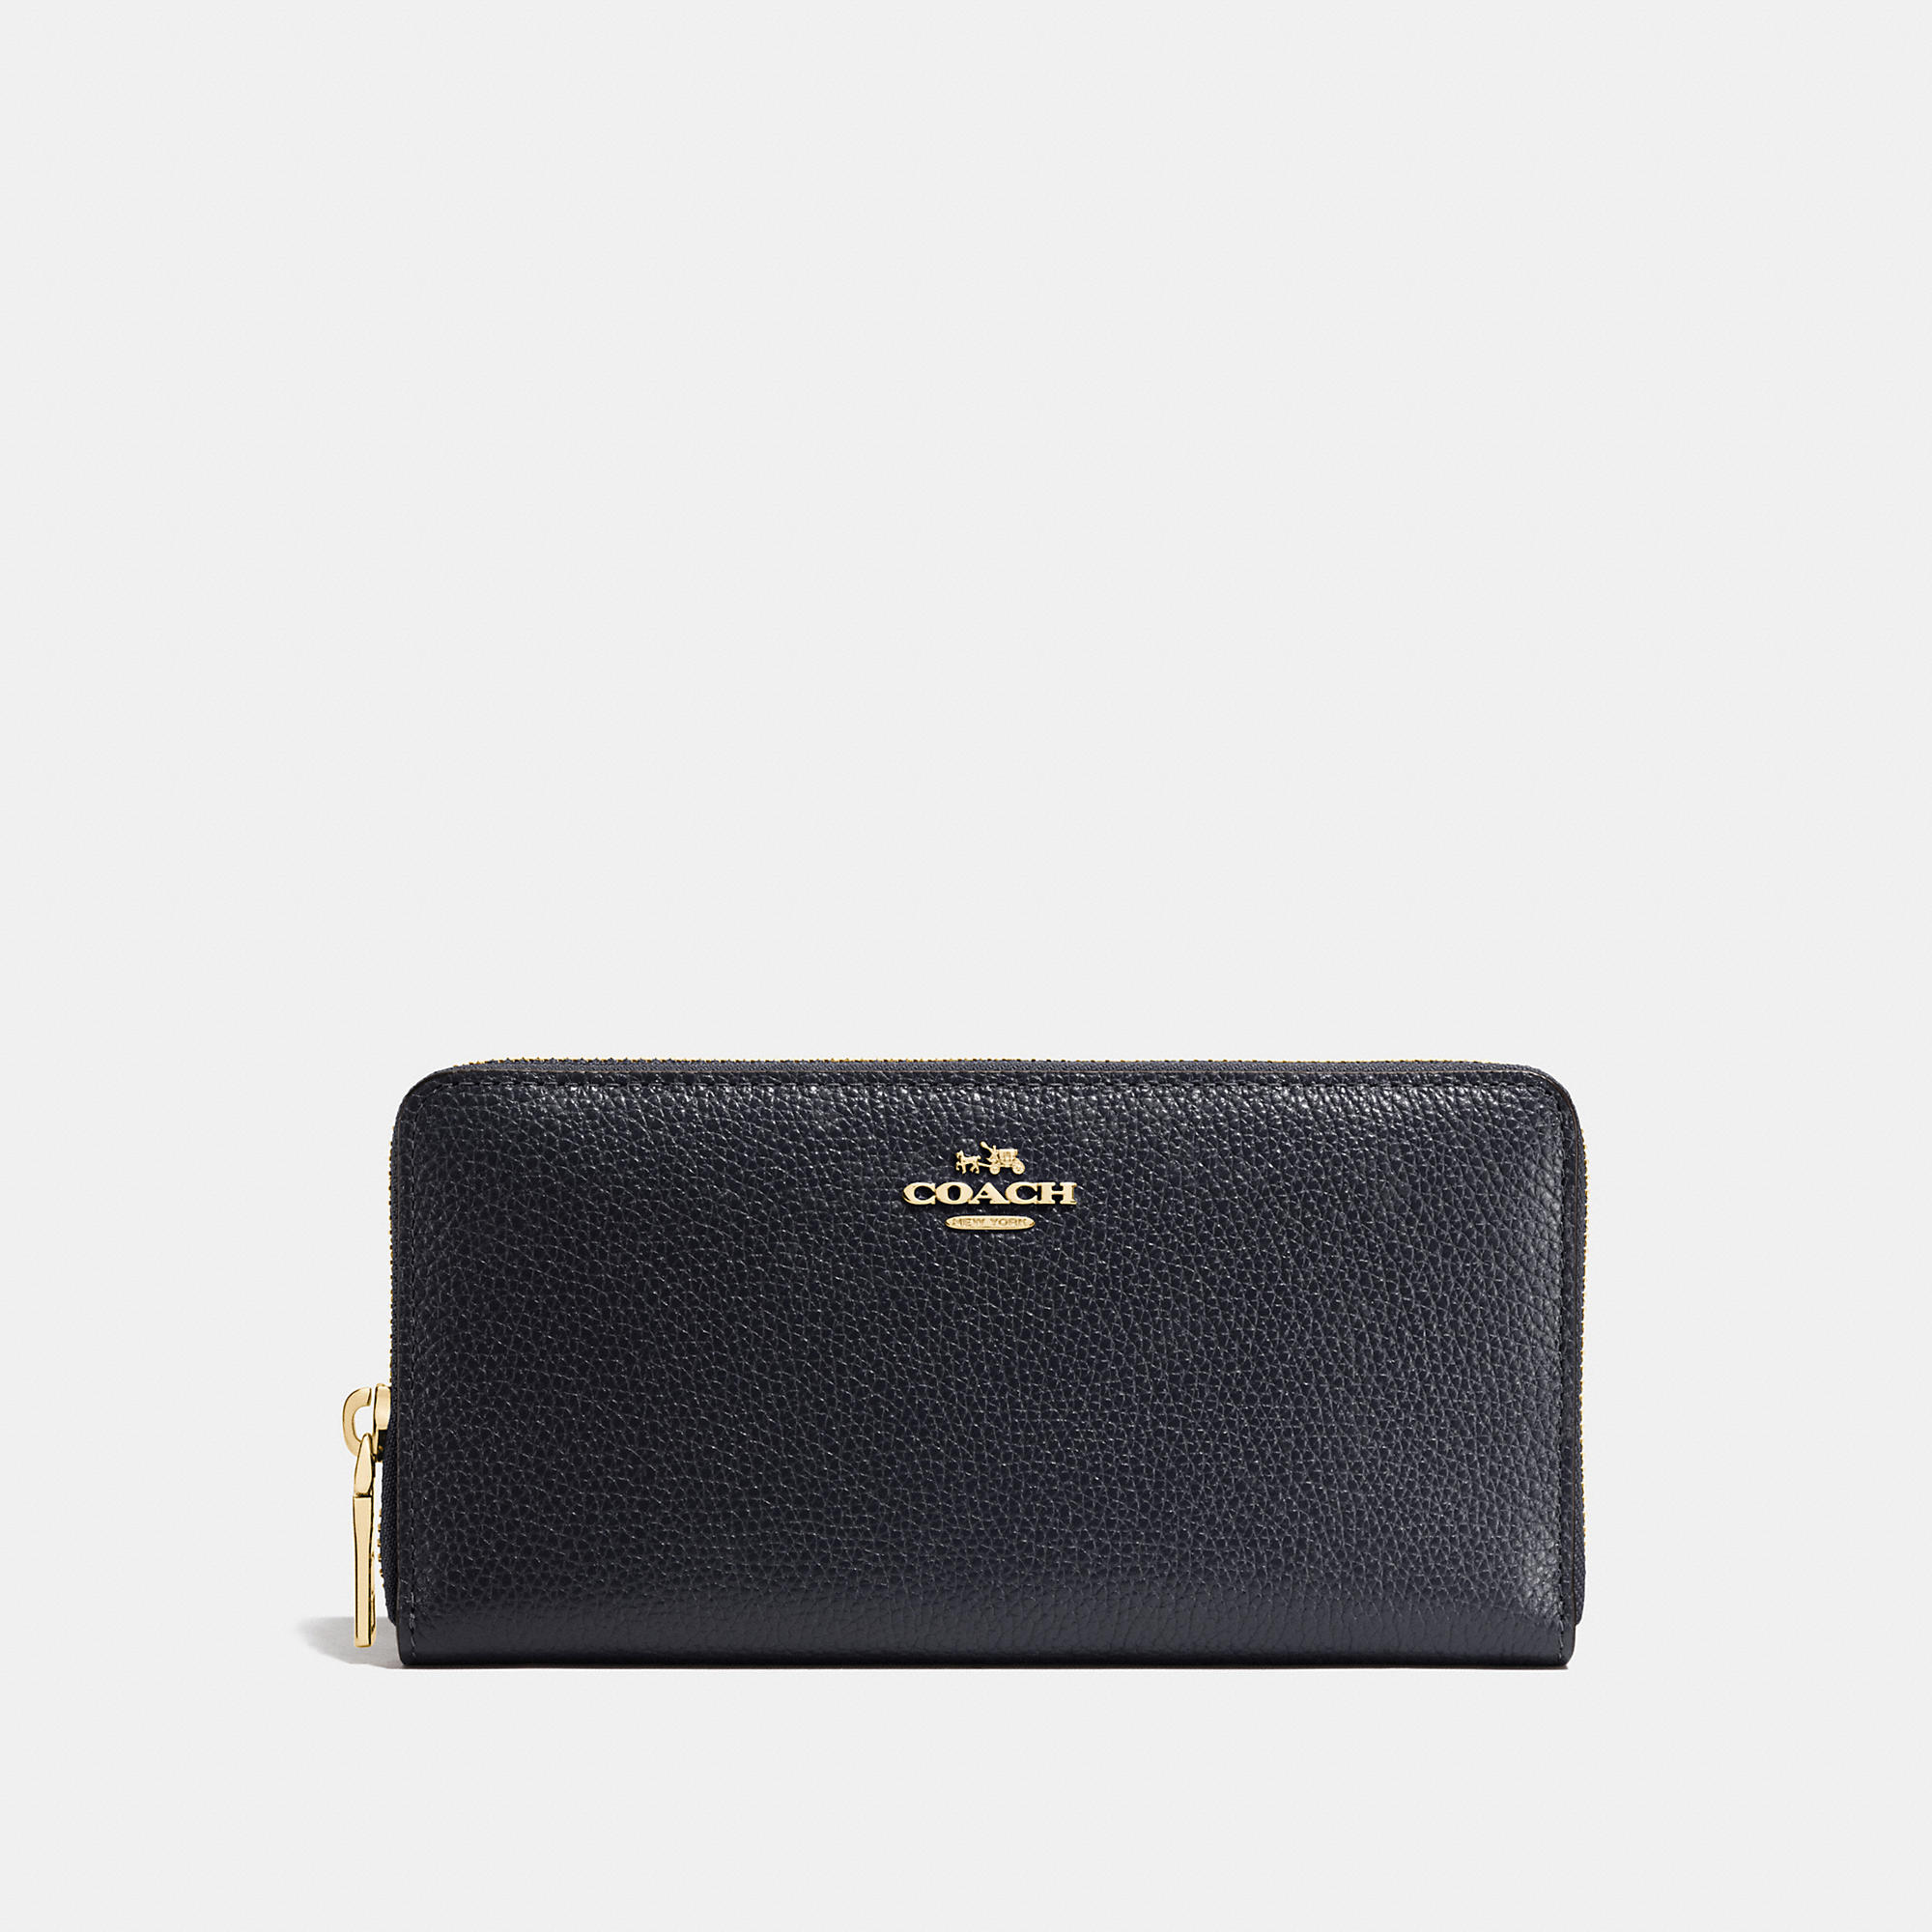 Coach Accordion Zip Wallet In Pebble Leather